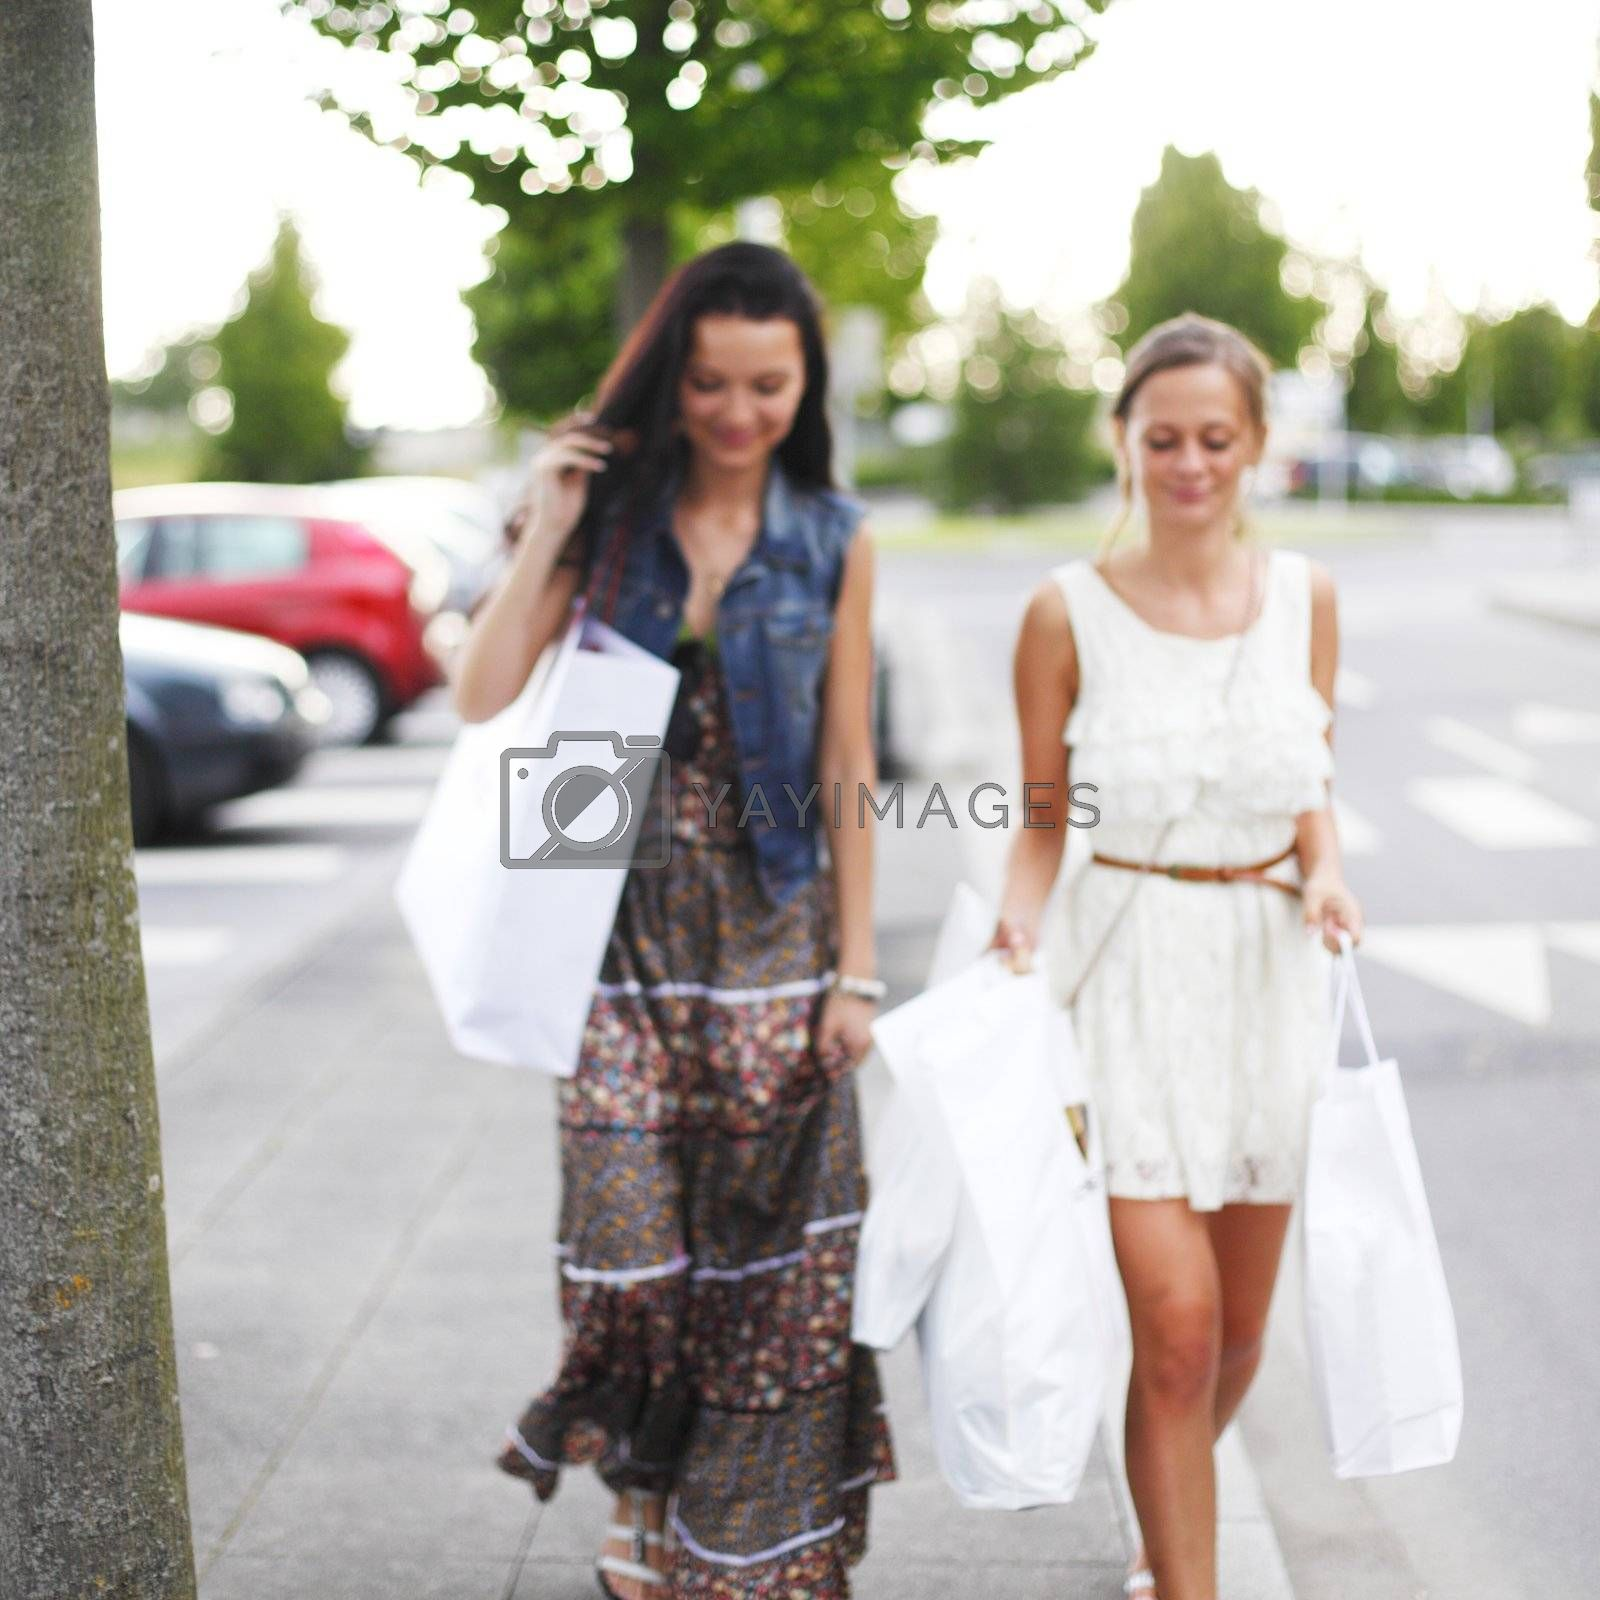 Two woman after shopping